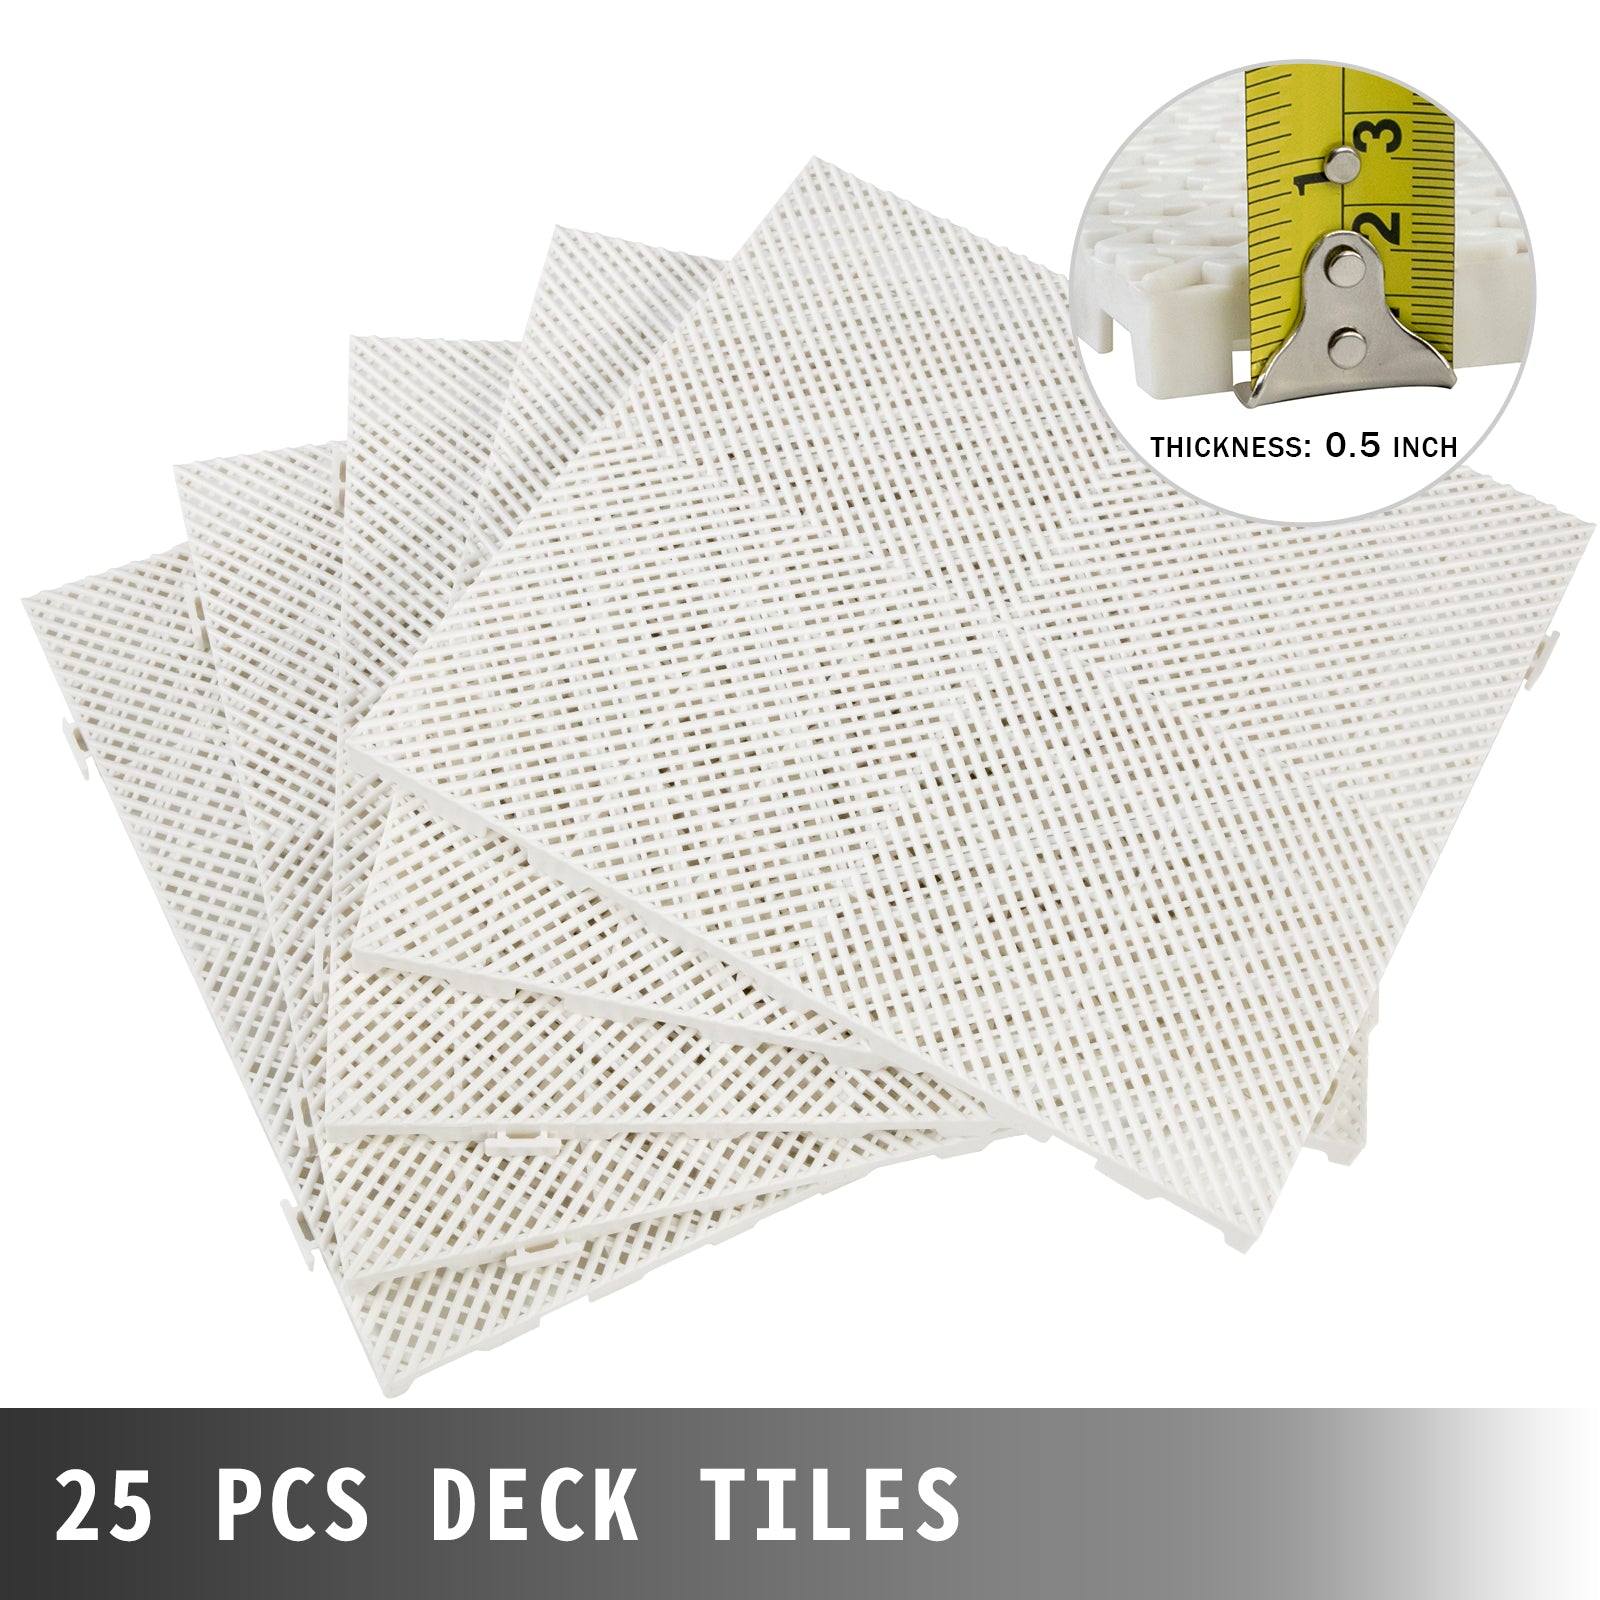 Rubber Tiles Interlockinggarage Floor Tiles11.8x11.8x0.5 Inch 25 Pcs Deck Tile